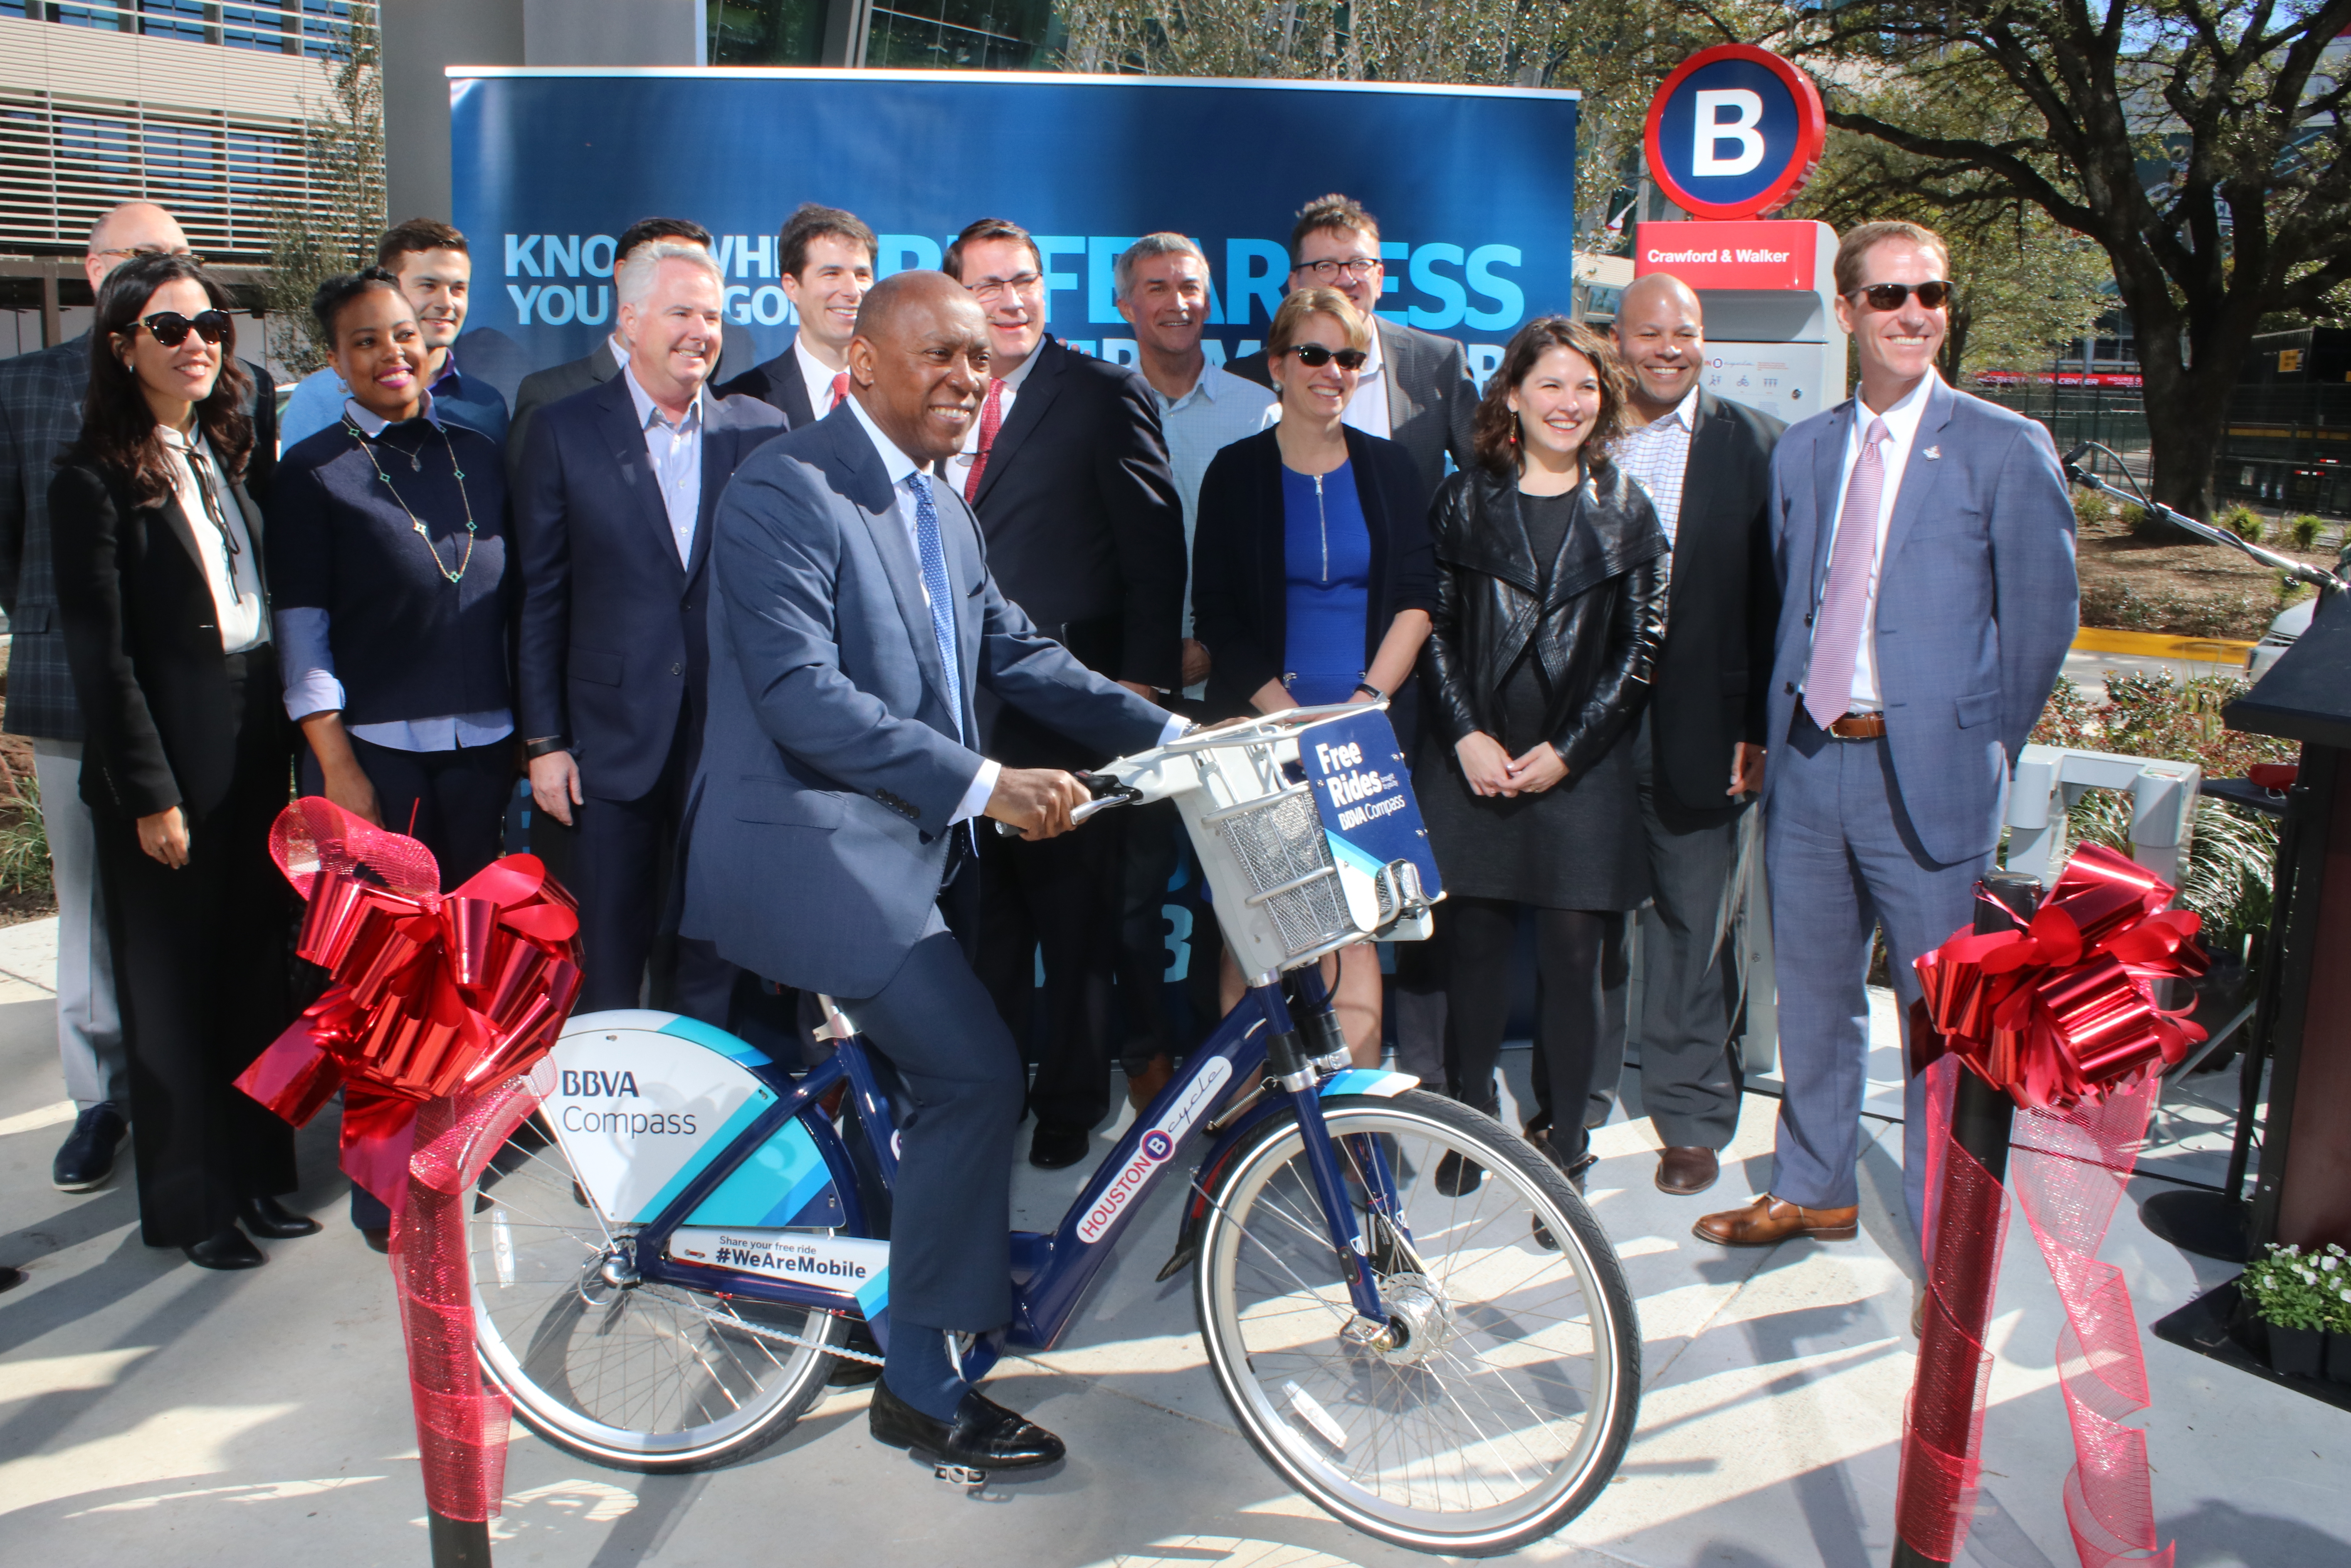 Mayor on BBVA Bike with Houston Bike Share Board - Photo by Doogie Roux